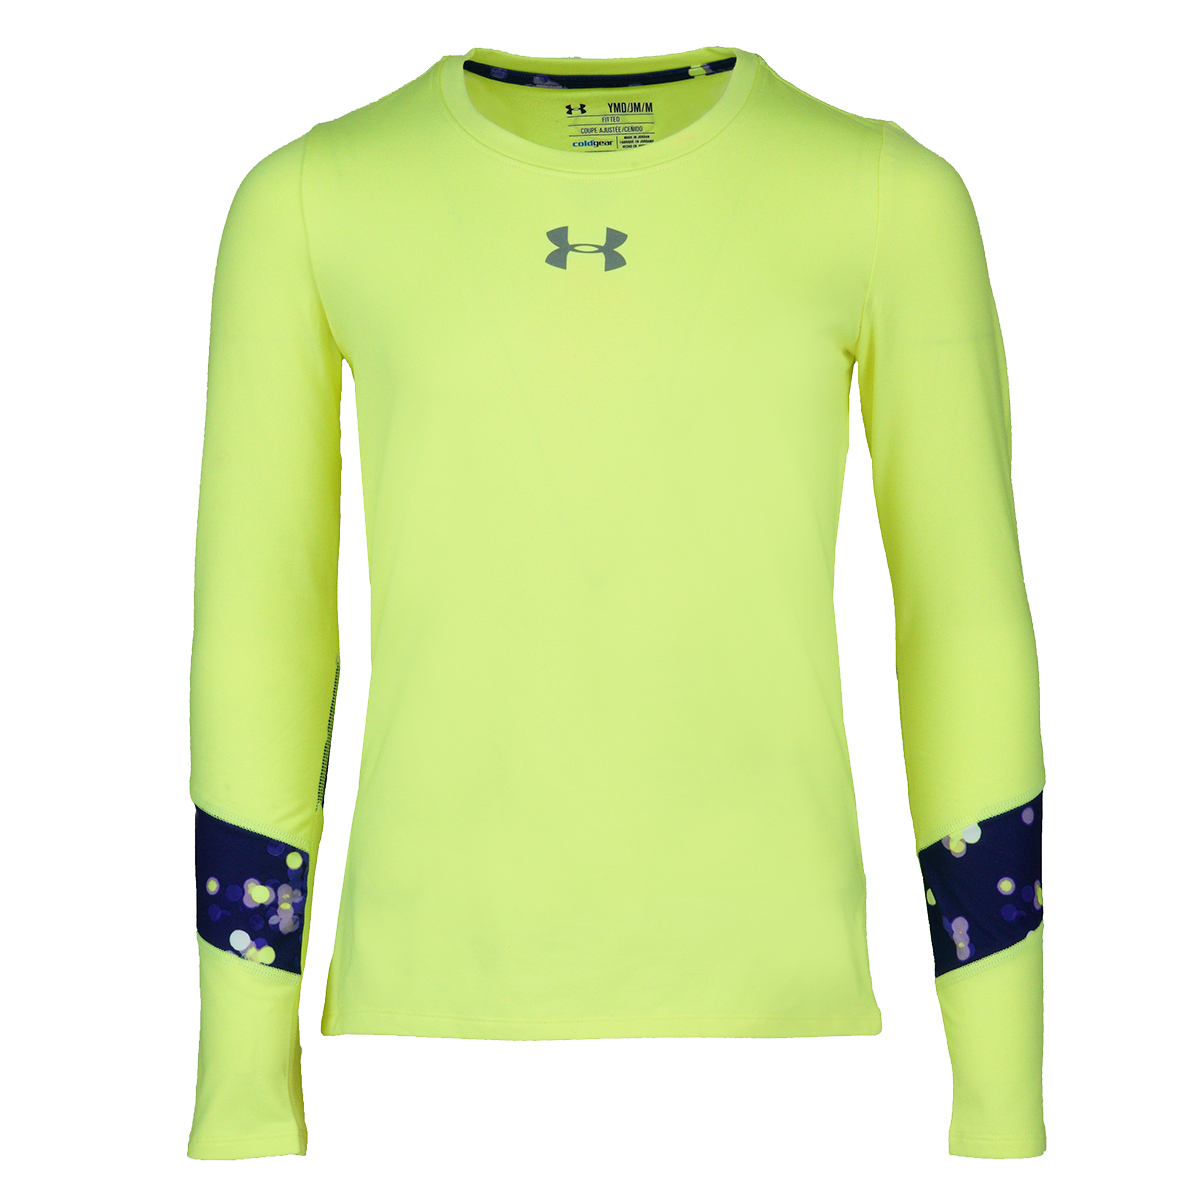 Under Armour Girls/' ColdGear L//S Shirt Cream S